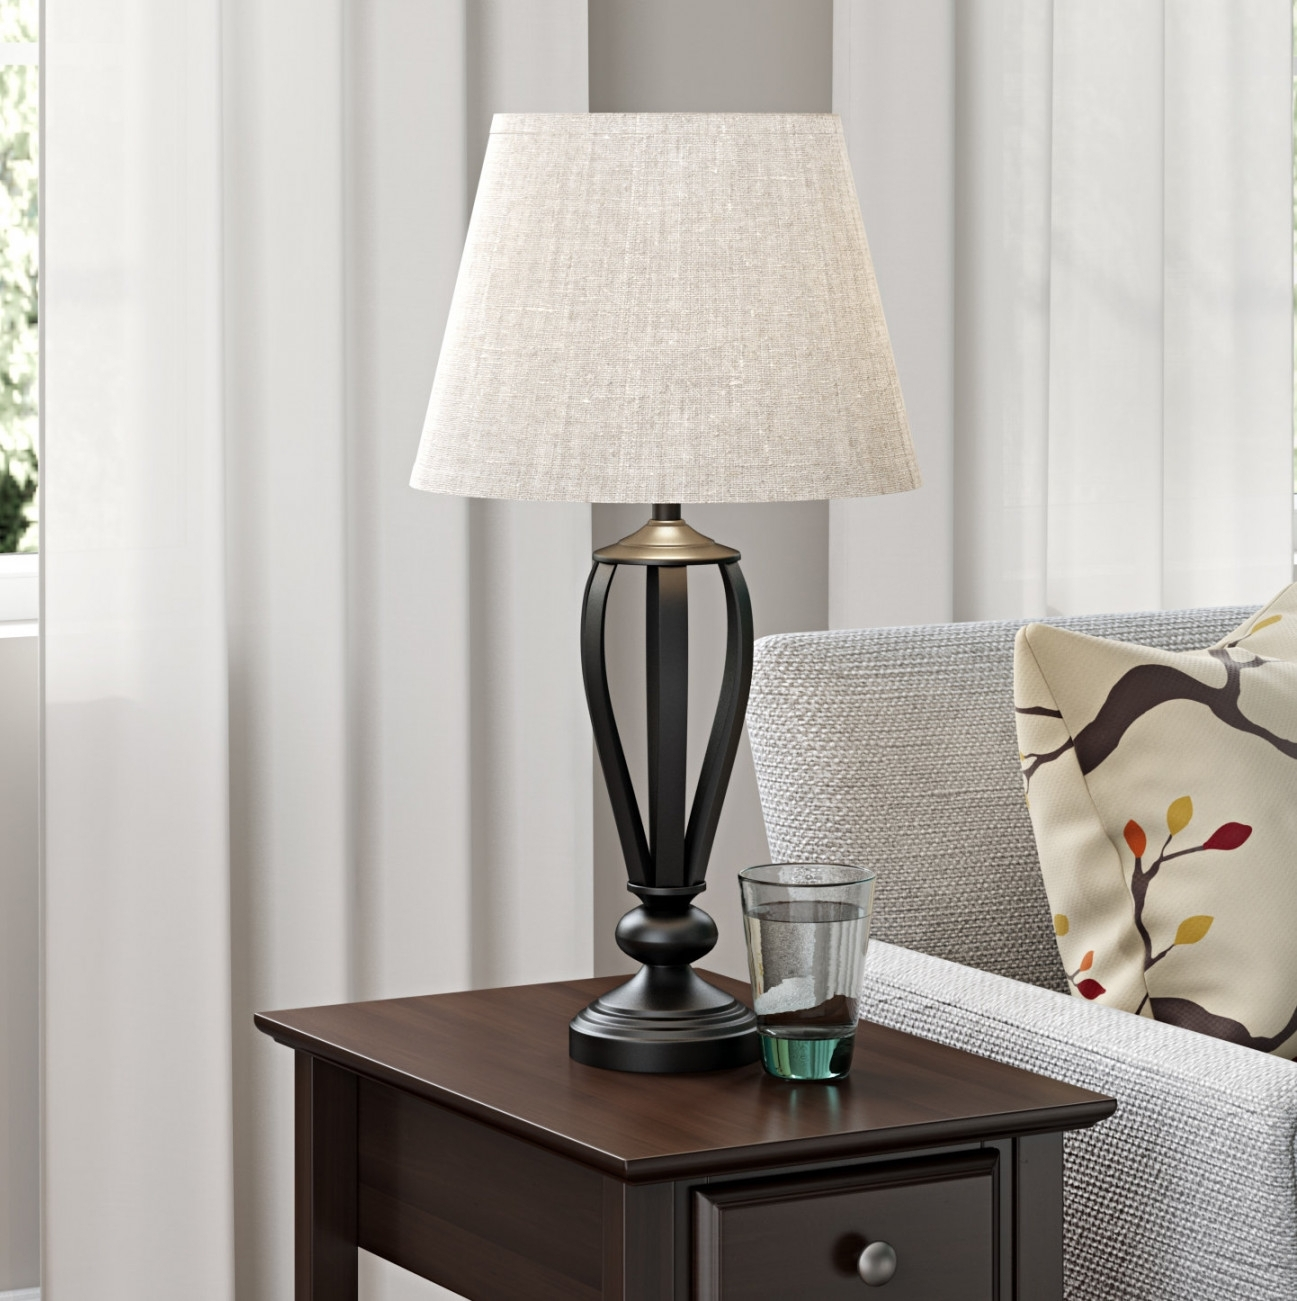 Wayfair Living Room Table Lamps | Home Design And Decorating Ideas For Wayfair Living Room Table Lamps (#14 of 15)